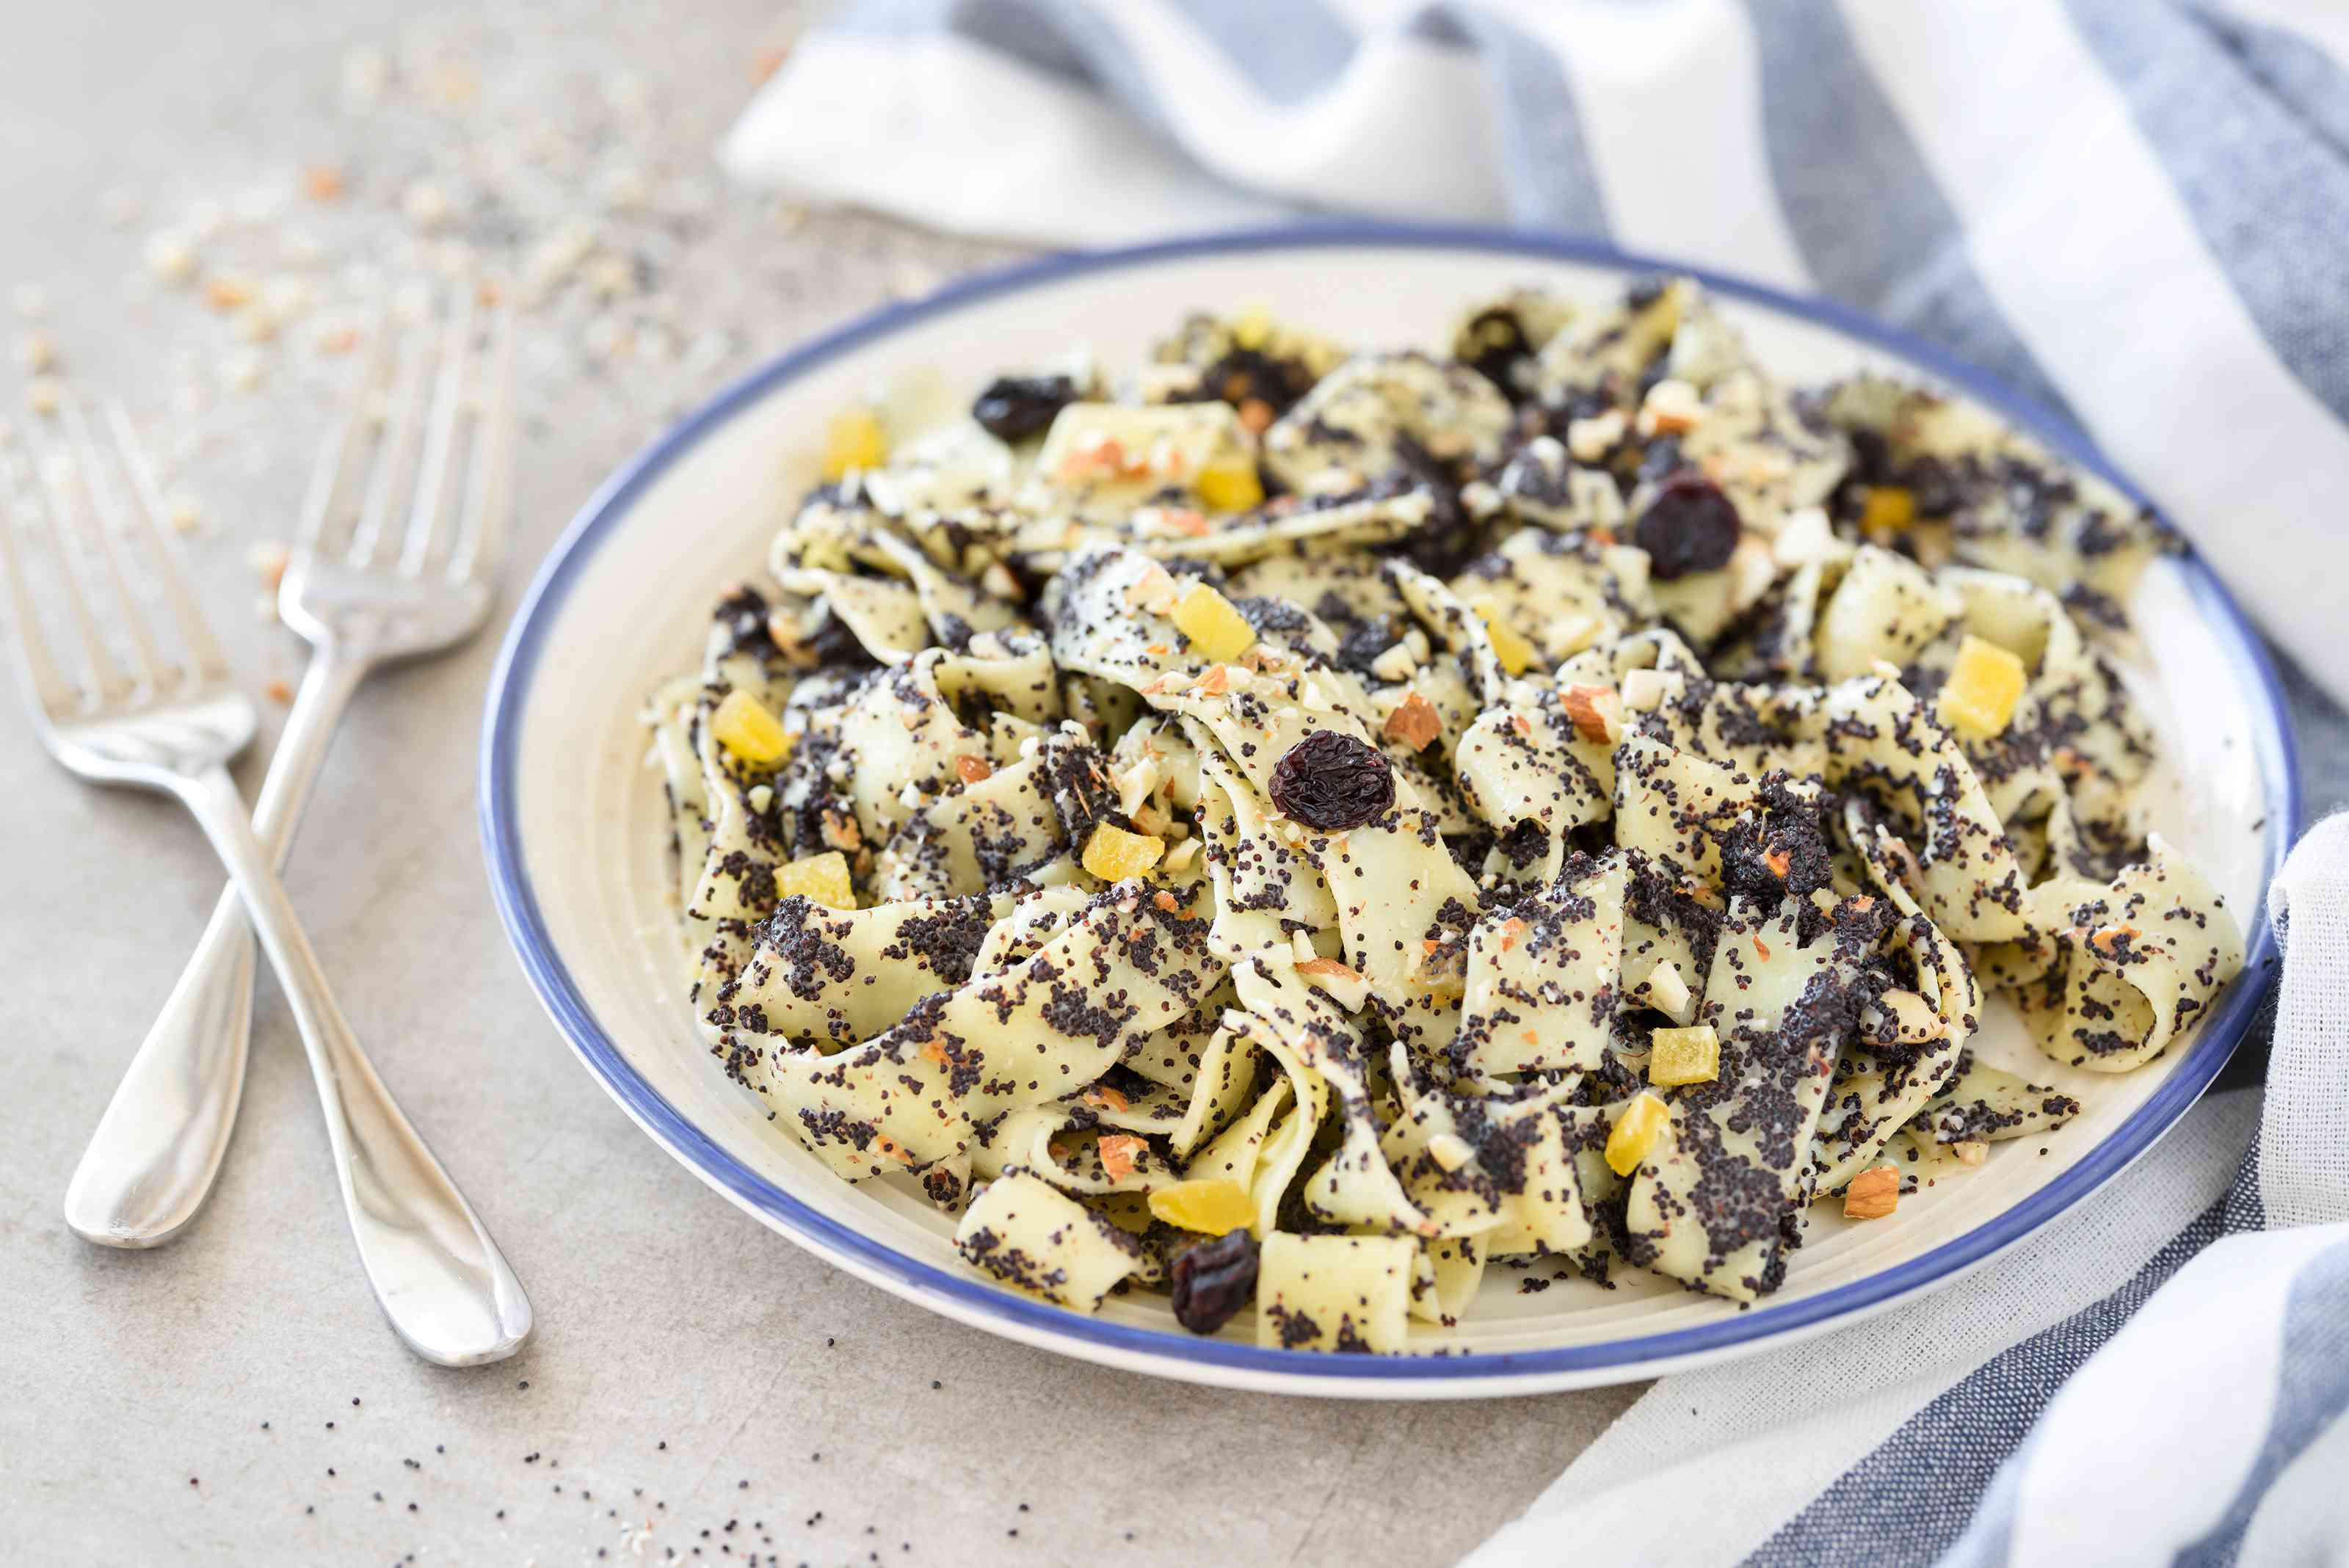 Polish noodles with poppy seeds recipe